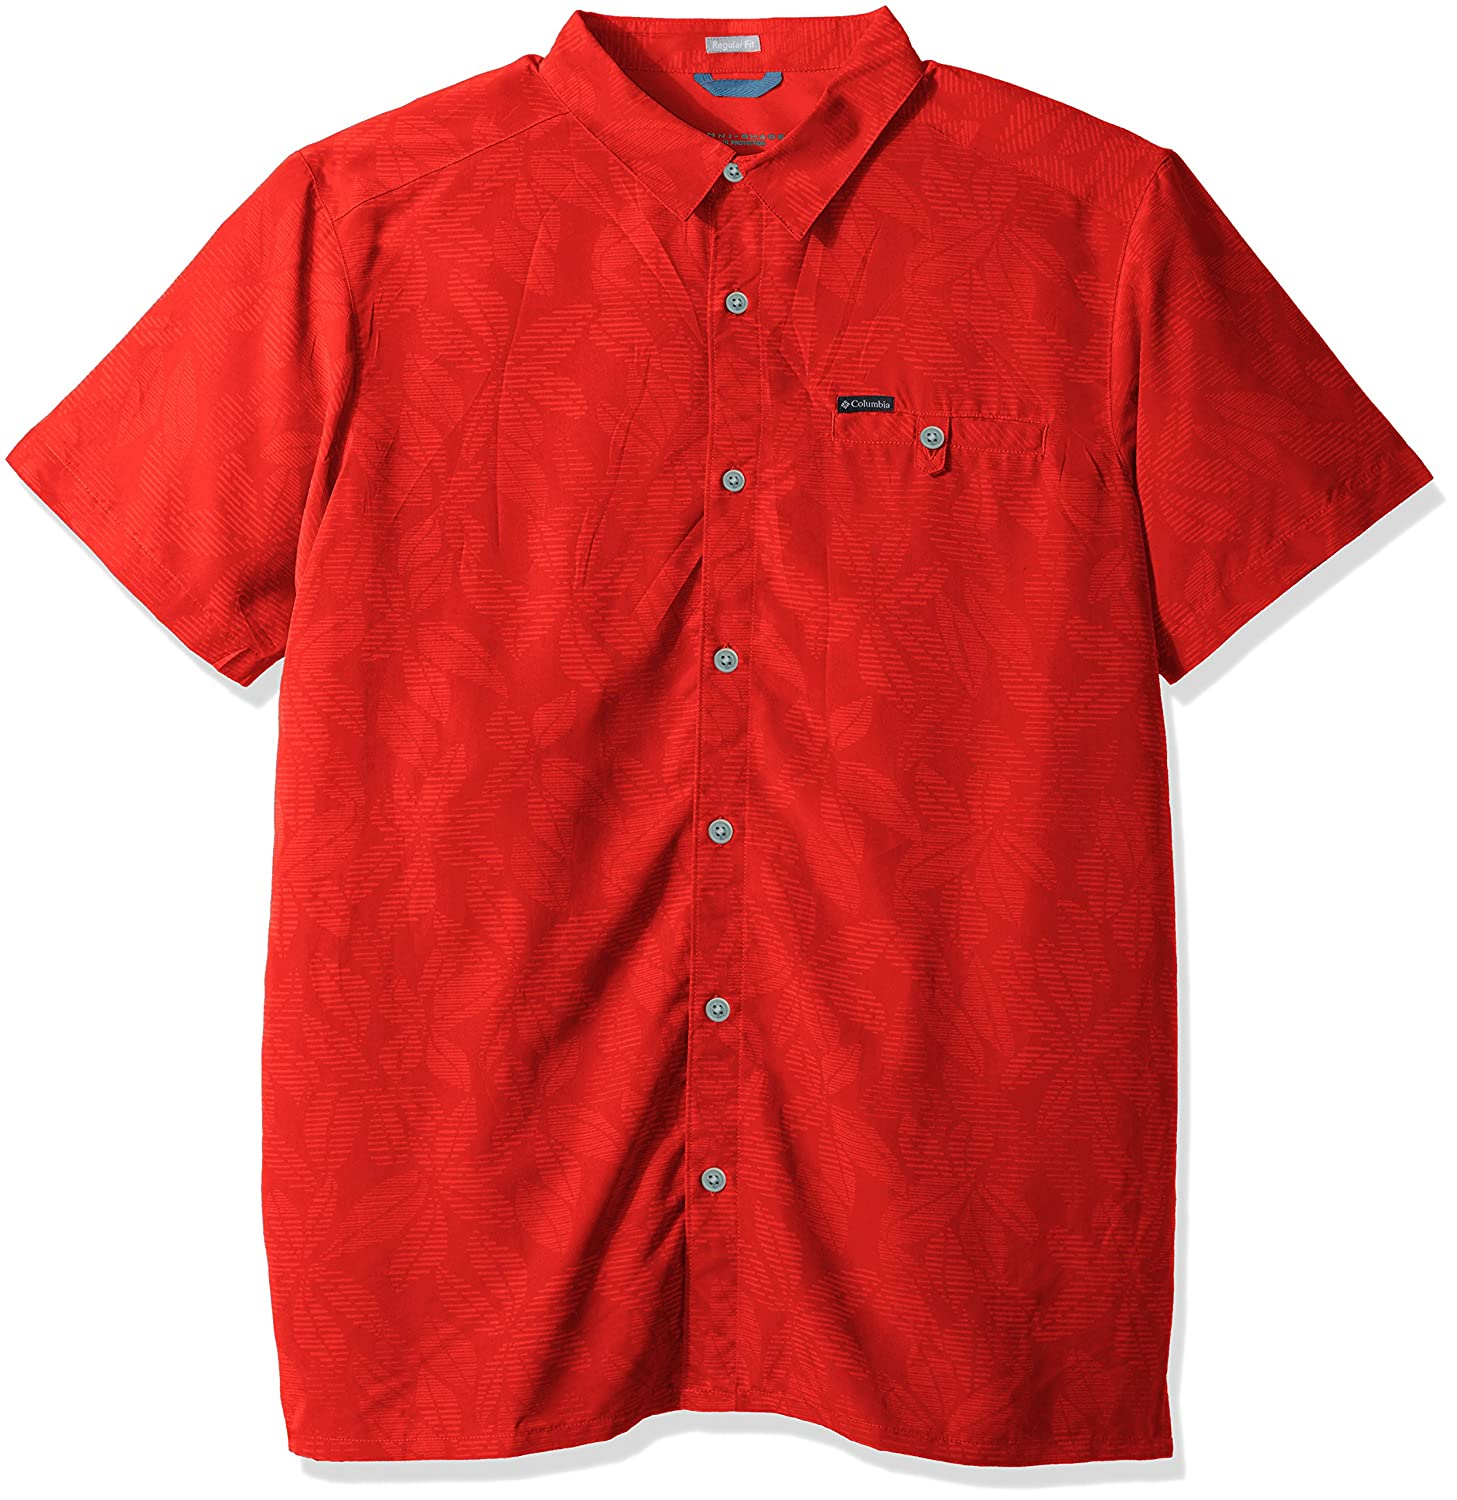 Sunset Red Floral Lines XLarge Tall Columbia Big and Tall Declination Trail Ii Big & Tall Short Sleeve Shirt